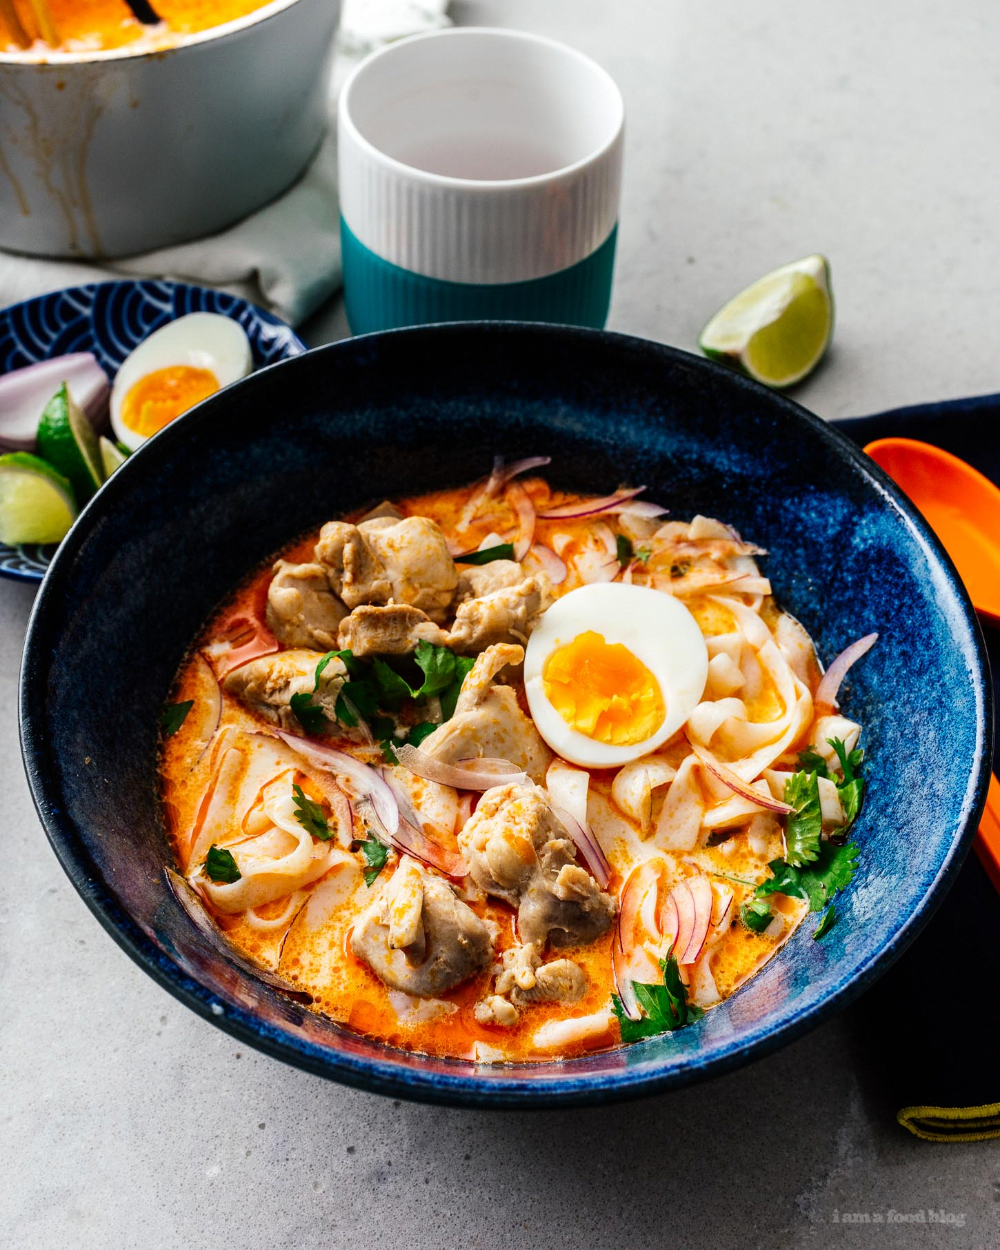 low carb keto-friendly thai red curry shirataki noodle soup #soup #thai #recipes #shirataki #curry #keto #lowcarb #keto recipes #ketosoups